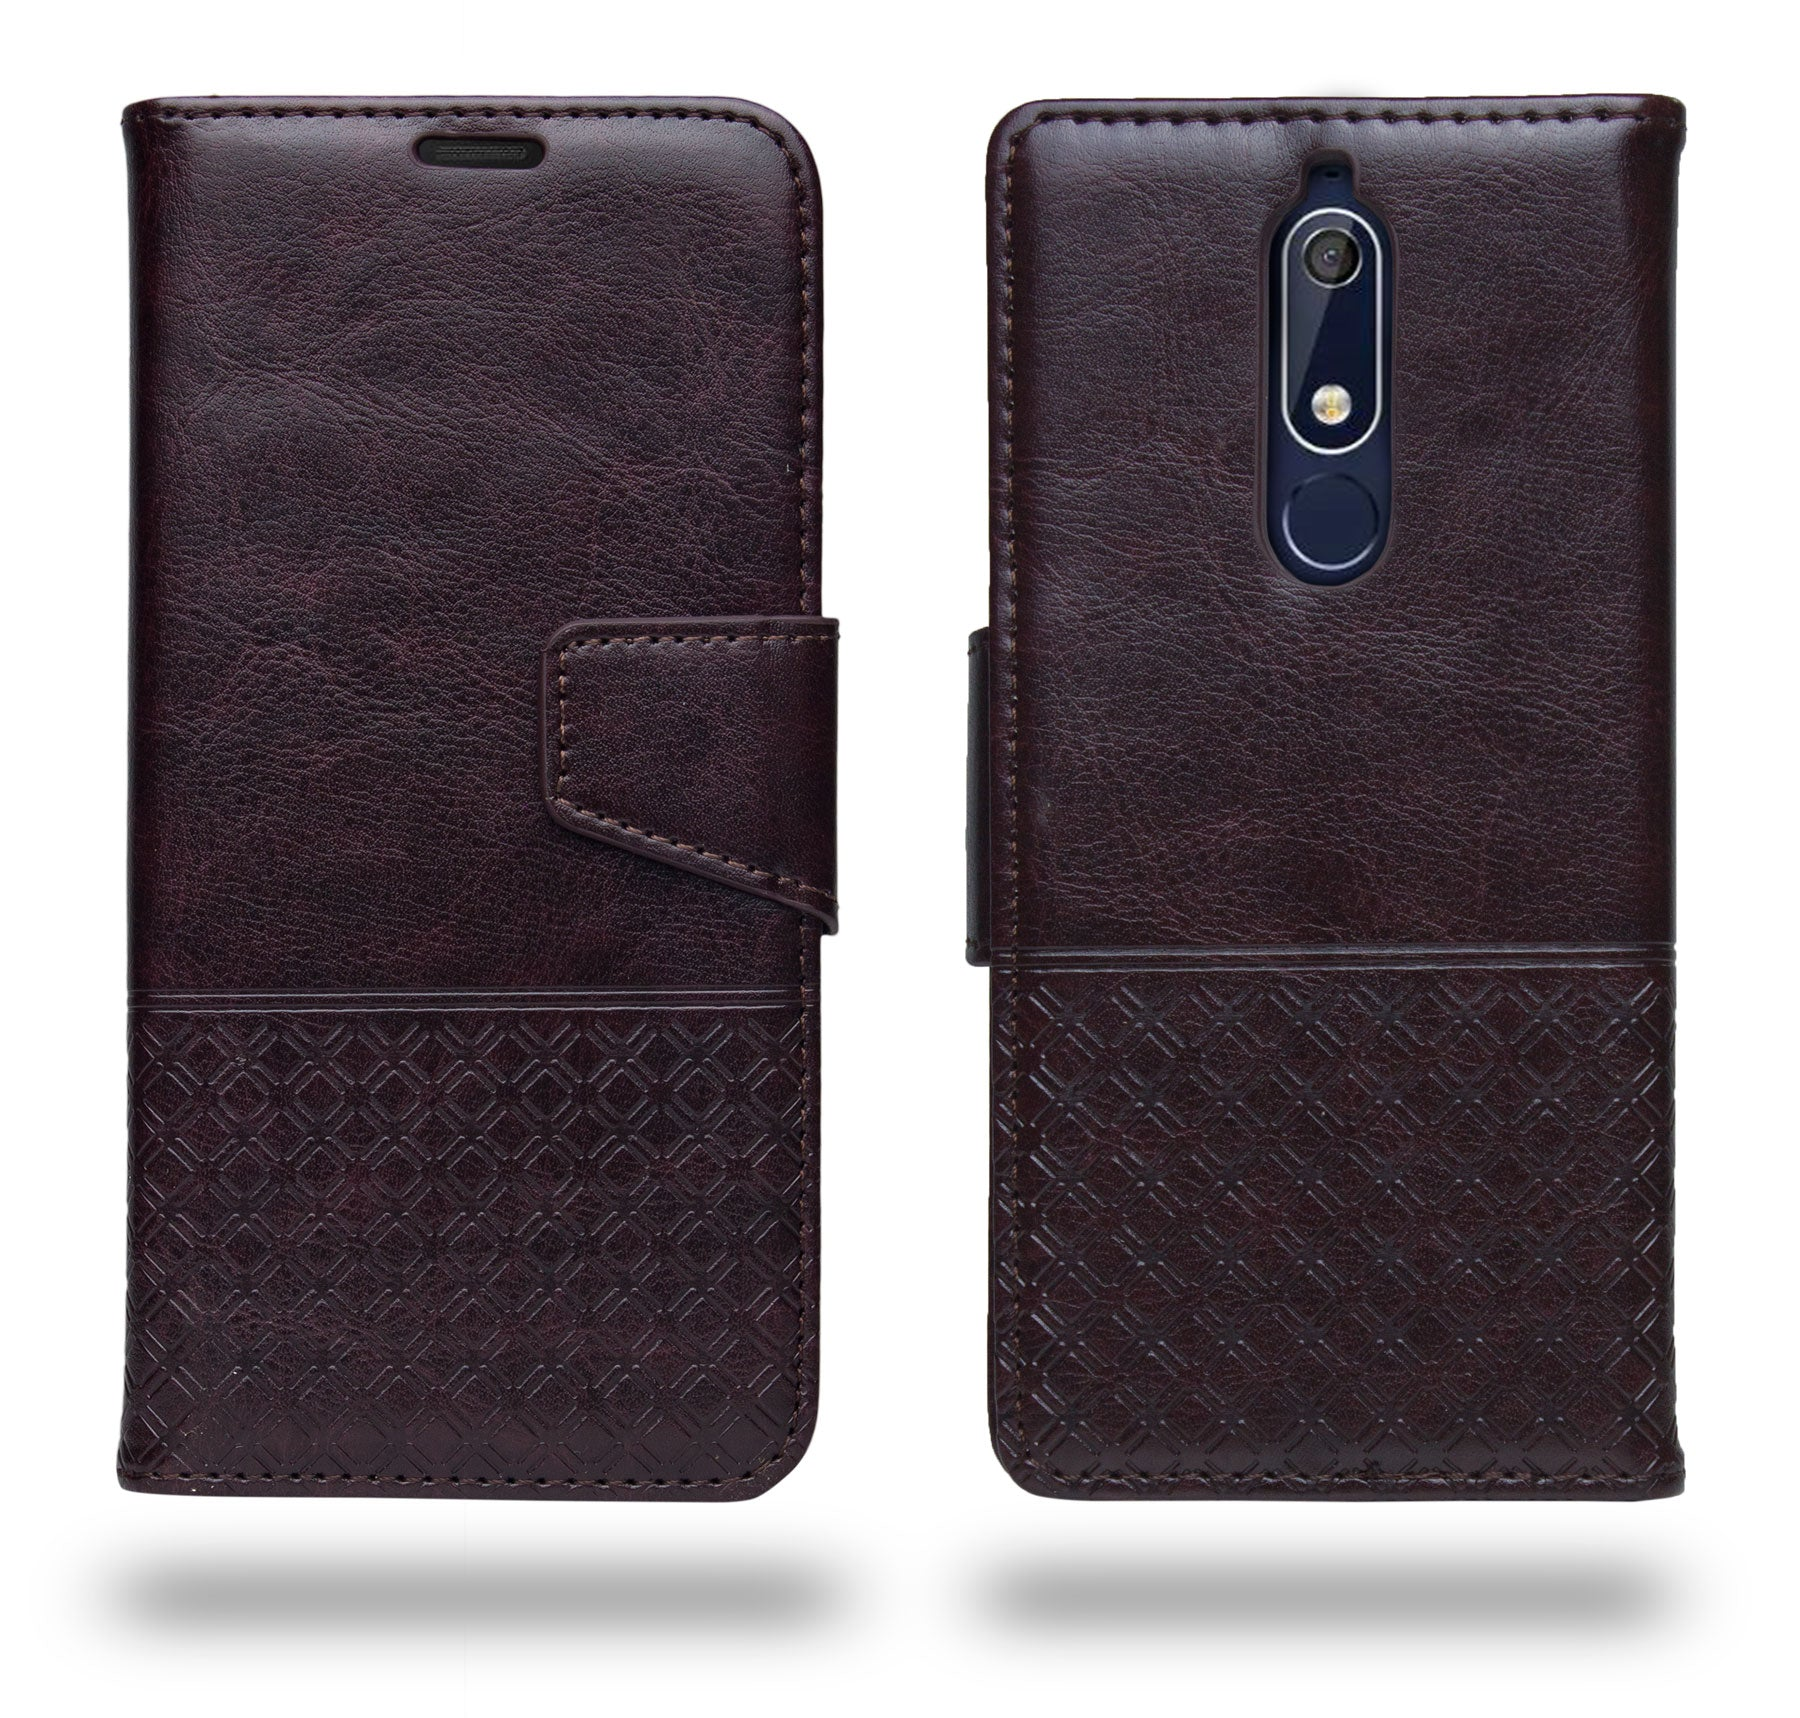 Ceego Luxuria Flip Cover for Nokia 5.1 - Chestnut Brown